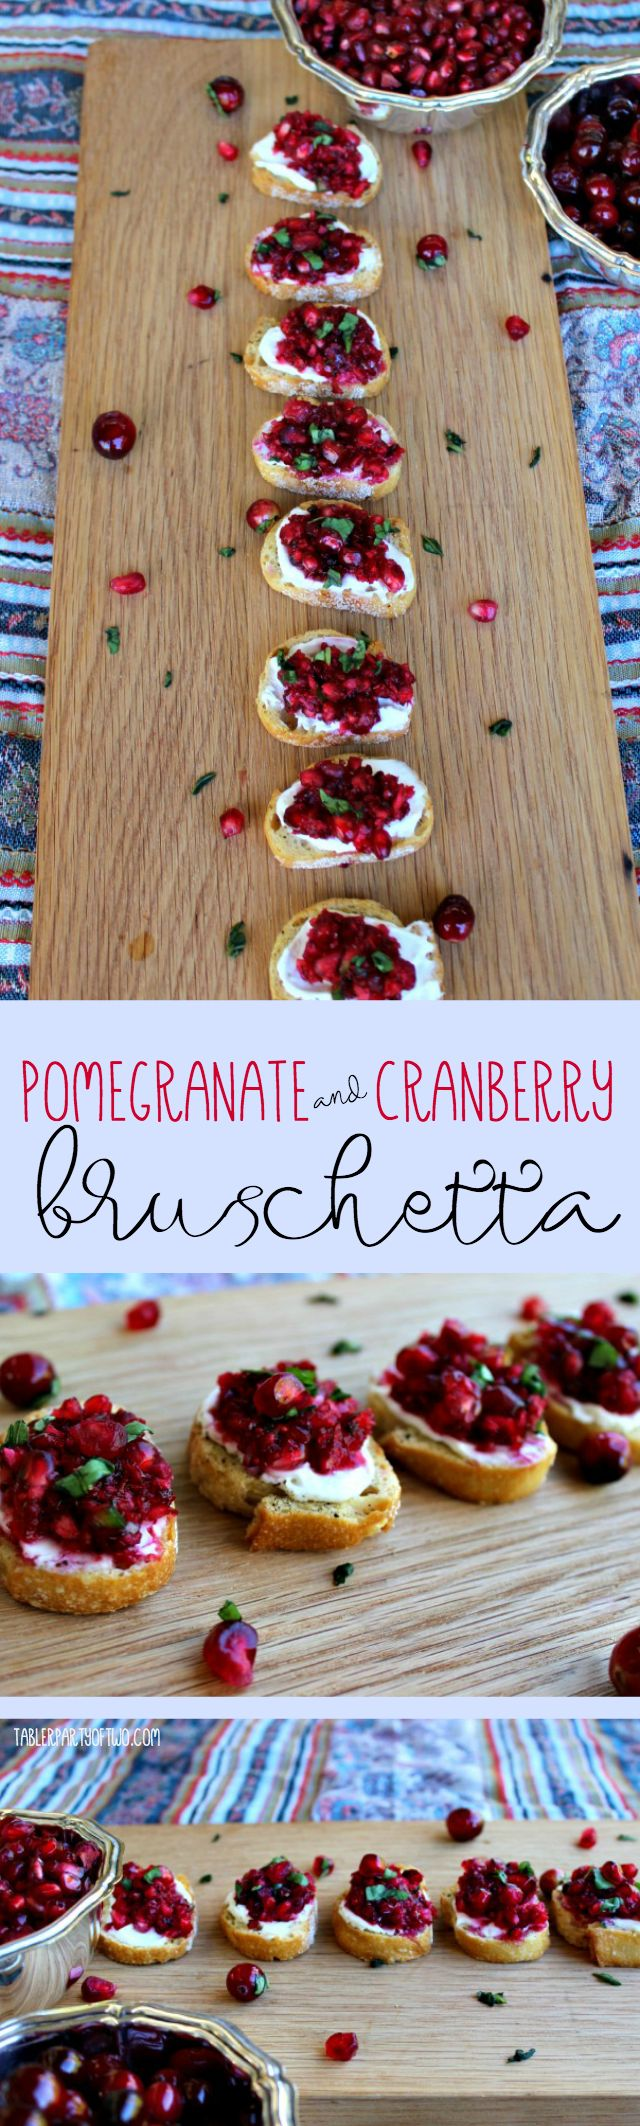 Pomegranate and Cranberry Bruschetta... so pretty, so delish! Perfect for your Thanksgiving and holiday gatherings!  party food, appetizers